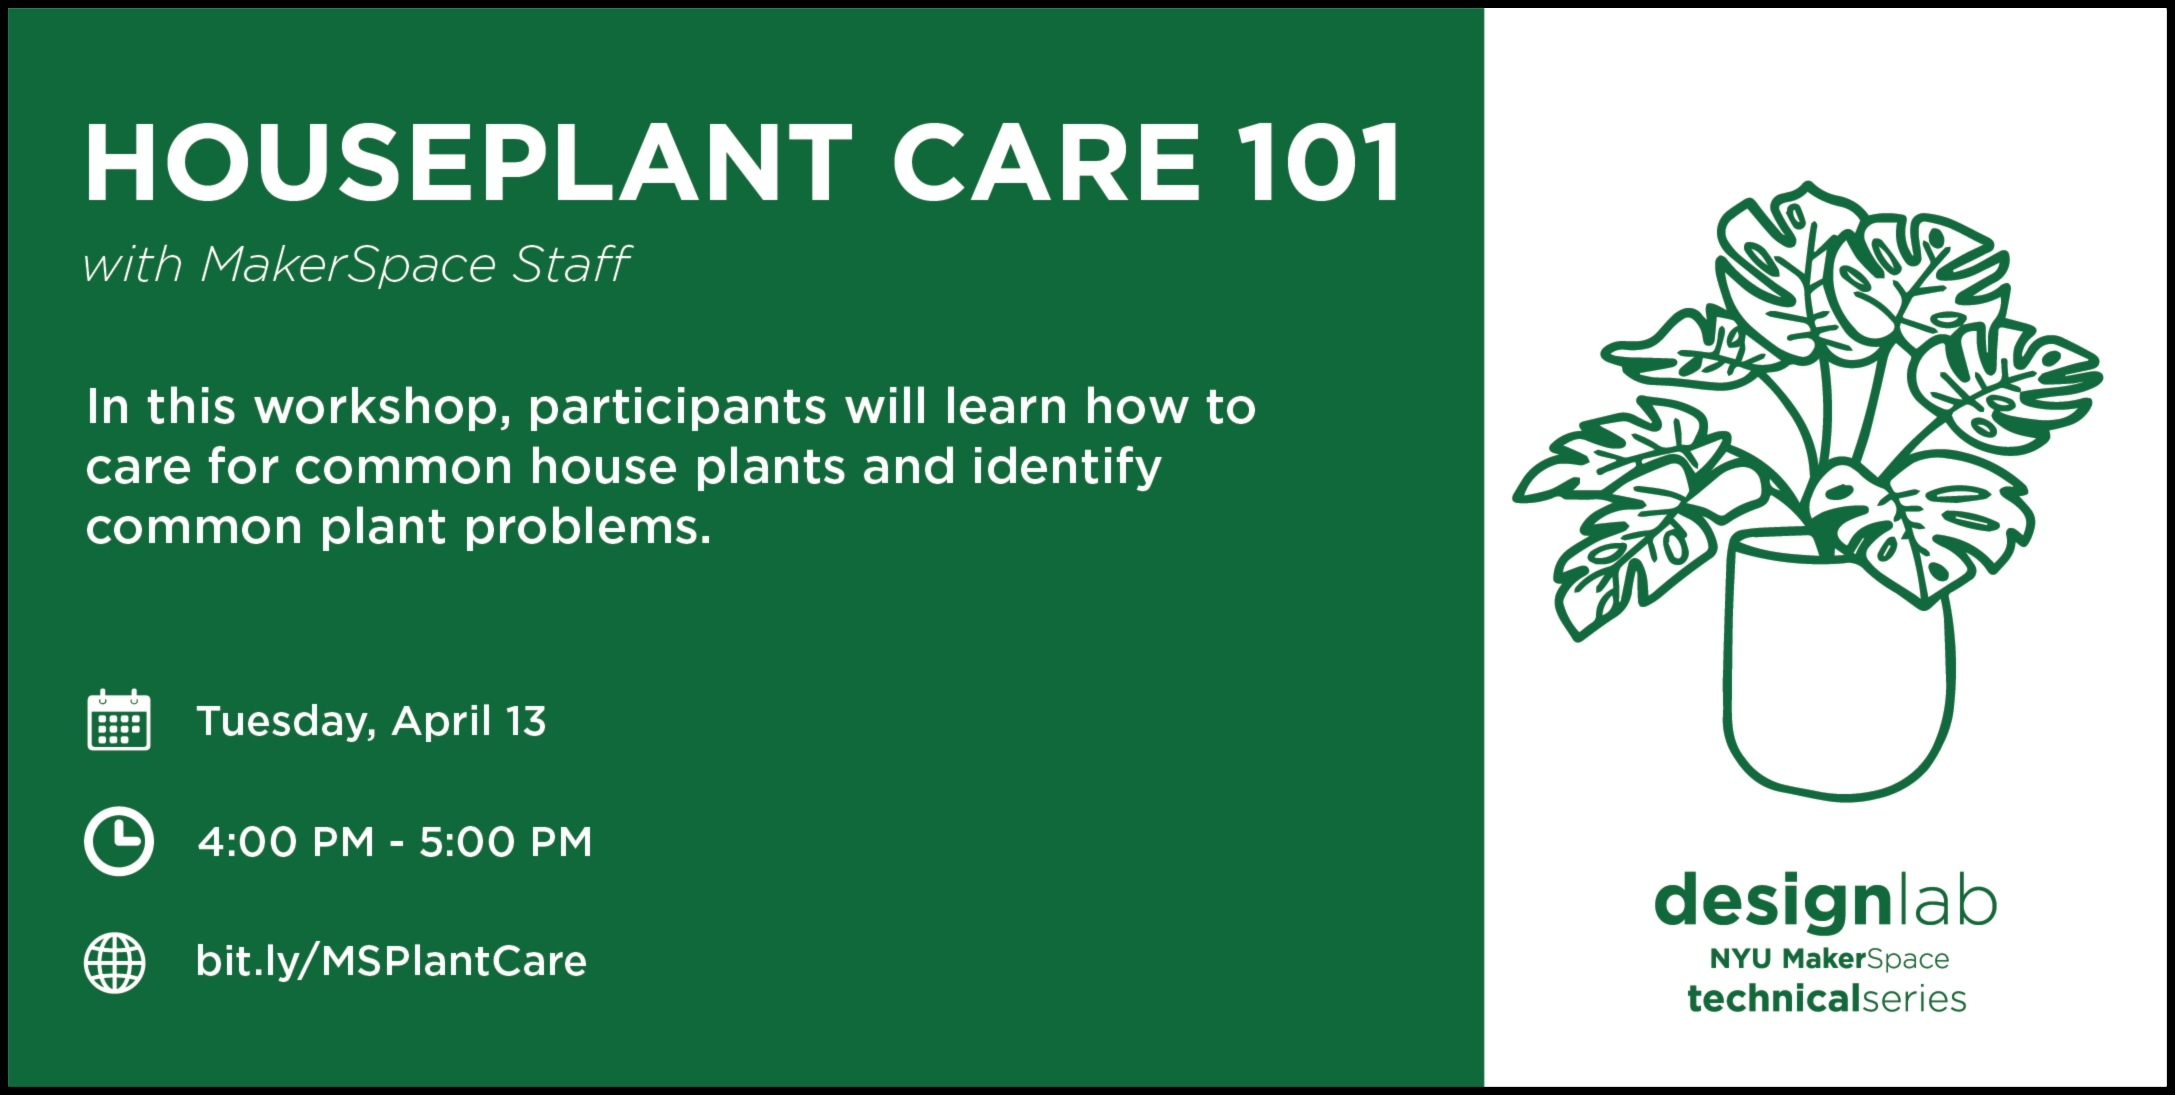 Houseplant Care 101 Flyer Spring 2021